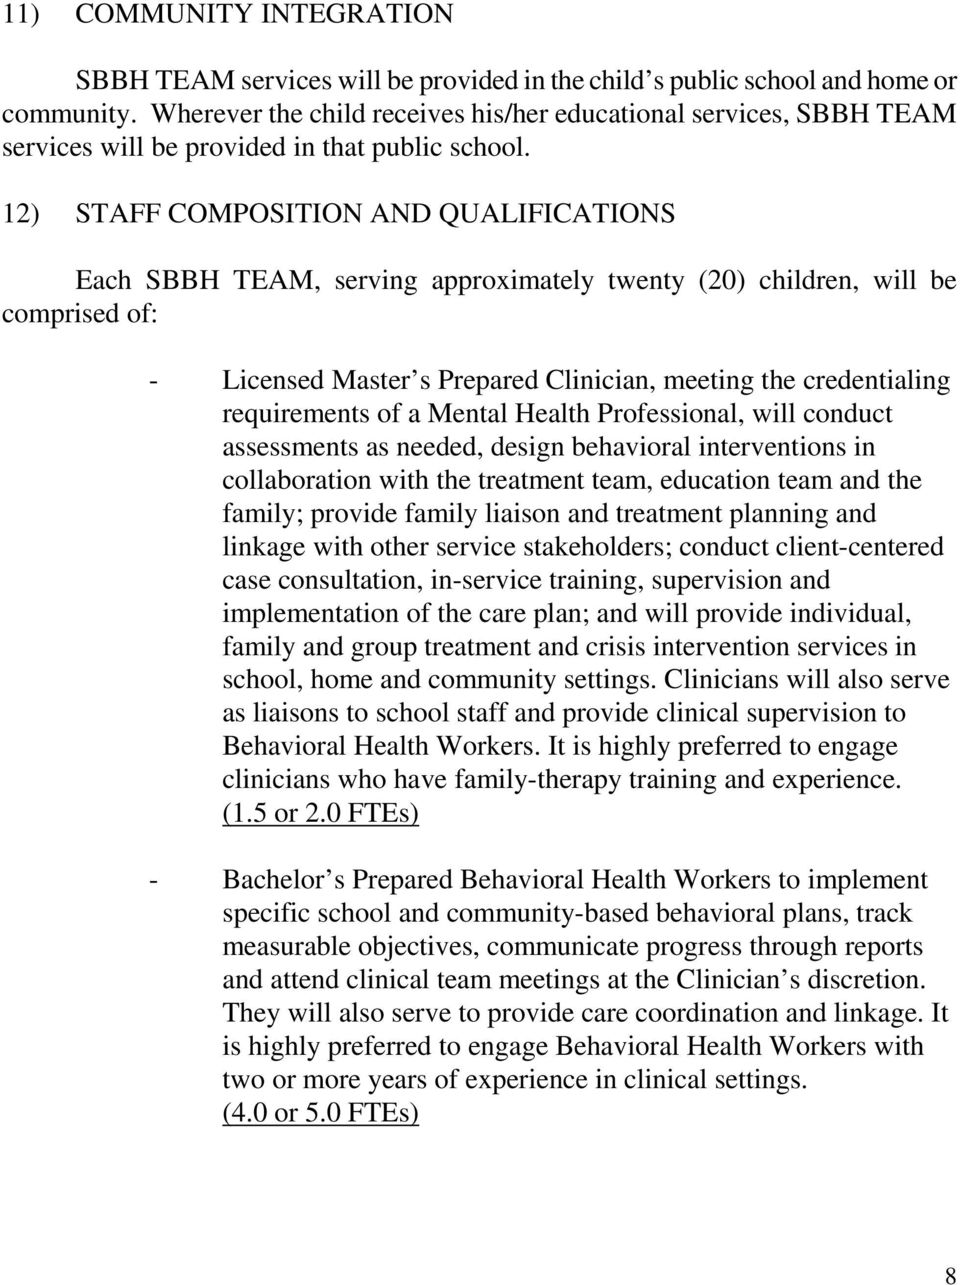 12) STAFF COMPOSITION AND QUALIFICATIONS Each SBBH TEAM, serving approximately twenty (20) children, will be comprised of: - Licensed Master s Prepared Clinician, meeting the credentialing